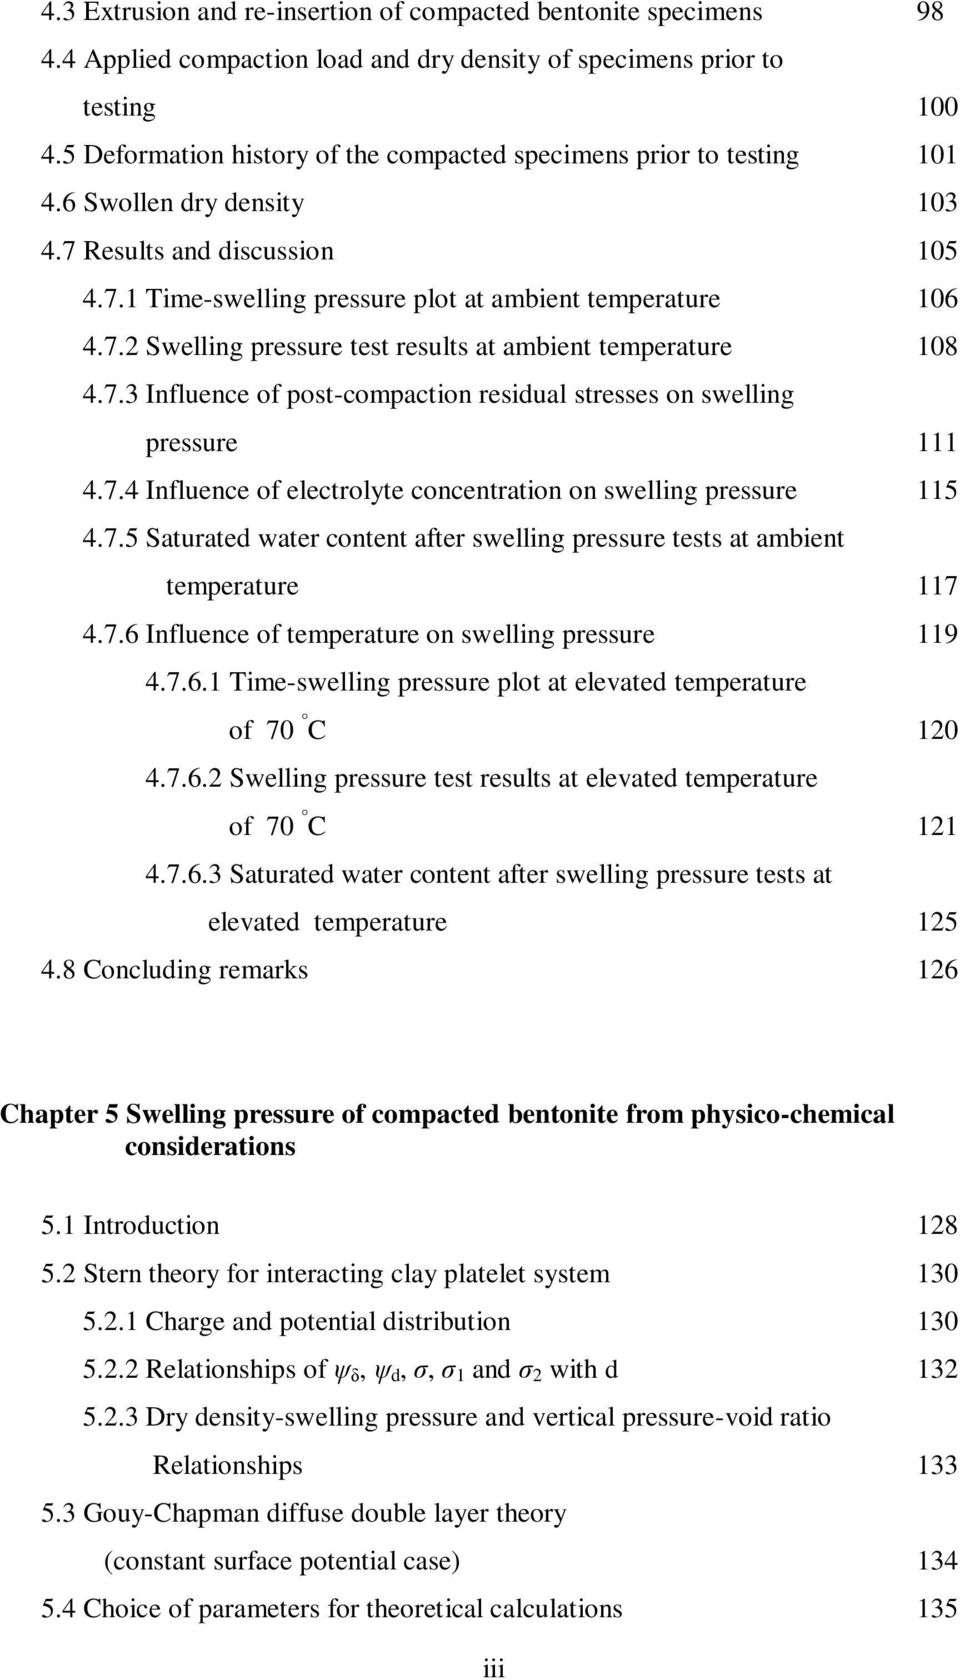 7.3 Influence of post-compaction residual stresses on swelling pressure 111 4.7.4 Influence of electrolyte concentration on swelling pressure 115 4.7.5 Saturated water content after swelling pressure tests at ambient temperature 117 4.